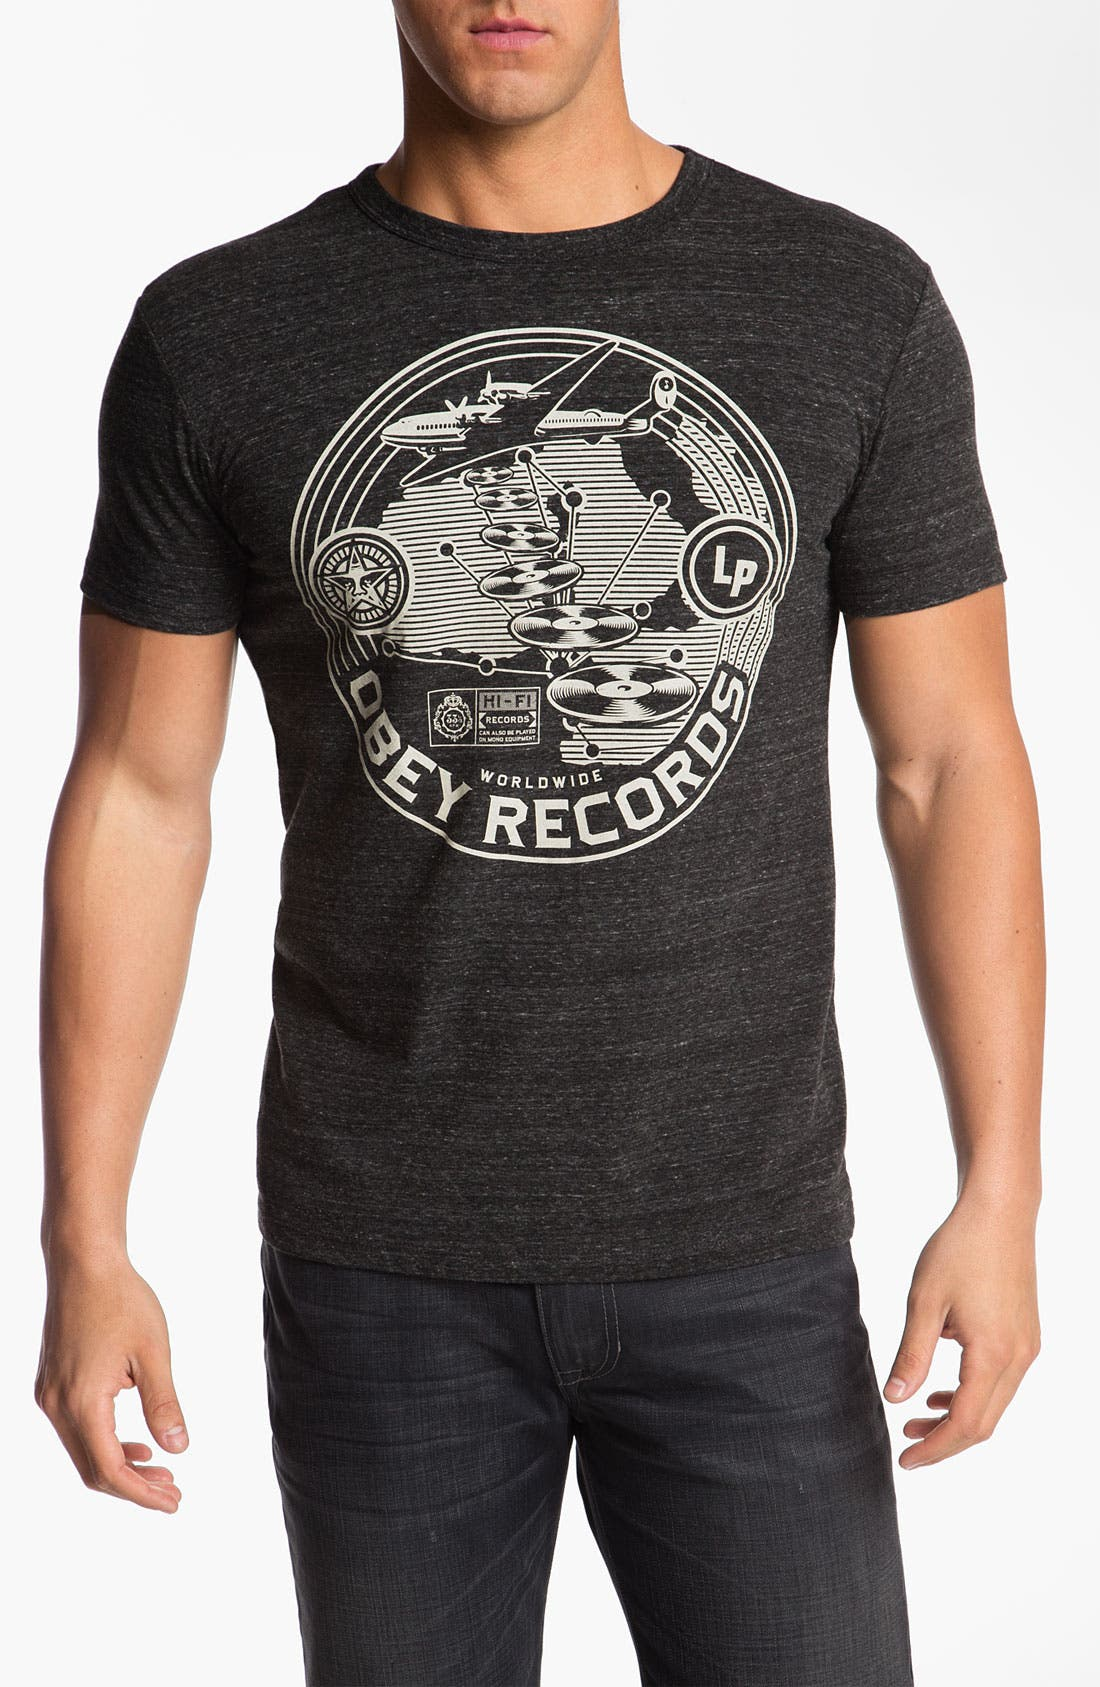 Alternate Image 1 Selected - Obey 'Hi-Fi Records' Graphic Crewneck T-Shirt